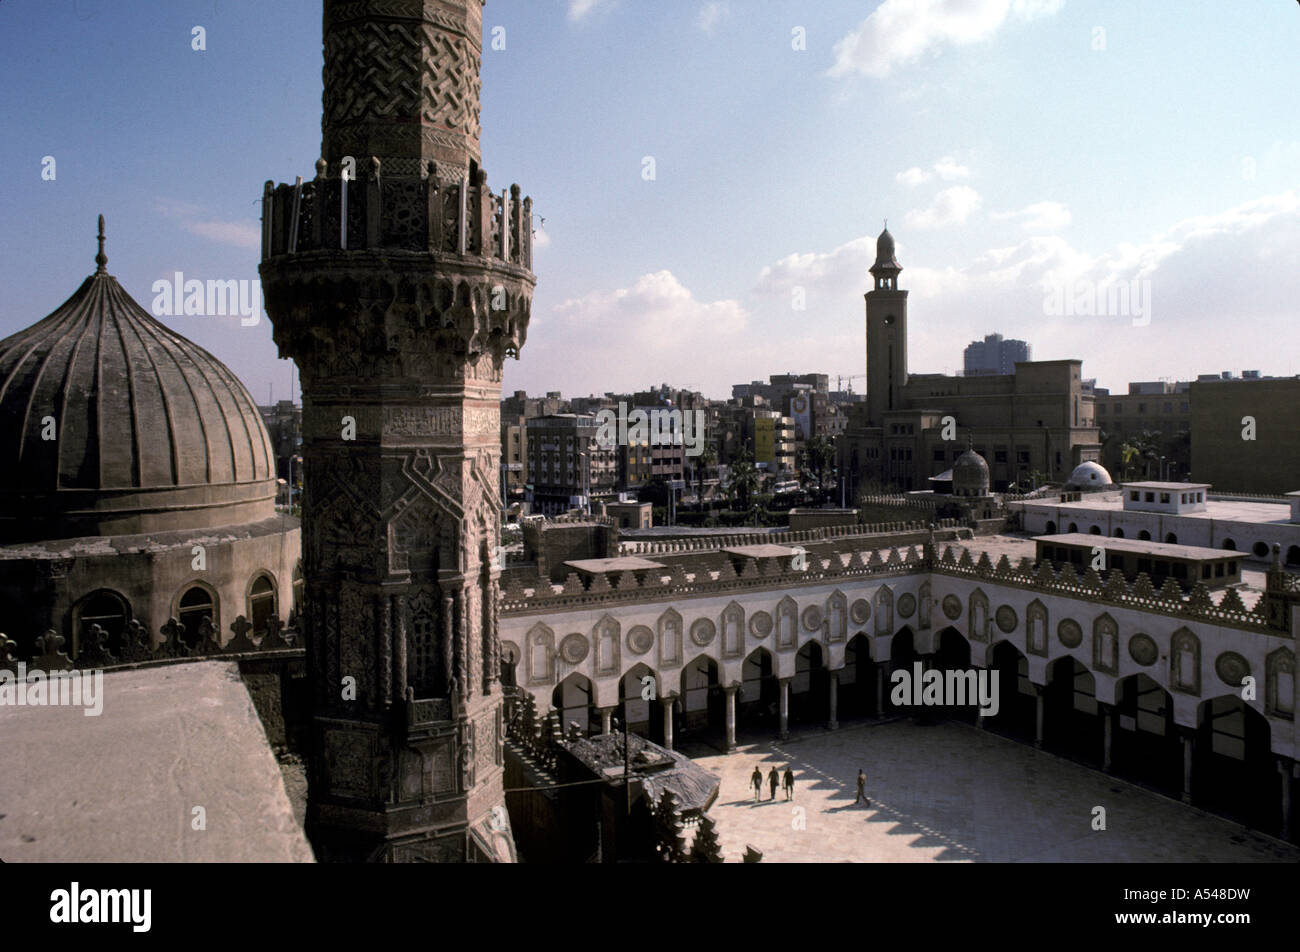 Painet hn1719 3164 egypt mosque al akbar cairo country developing nation less economically developed culture emerging - Stock Image